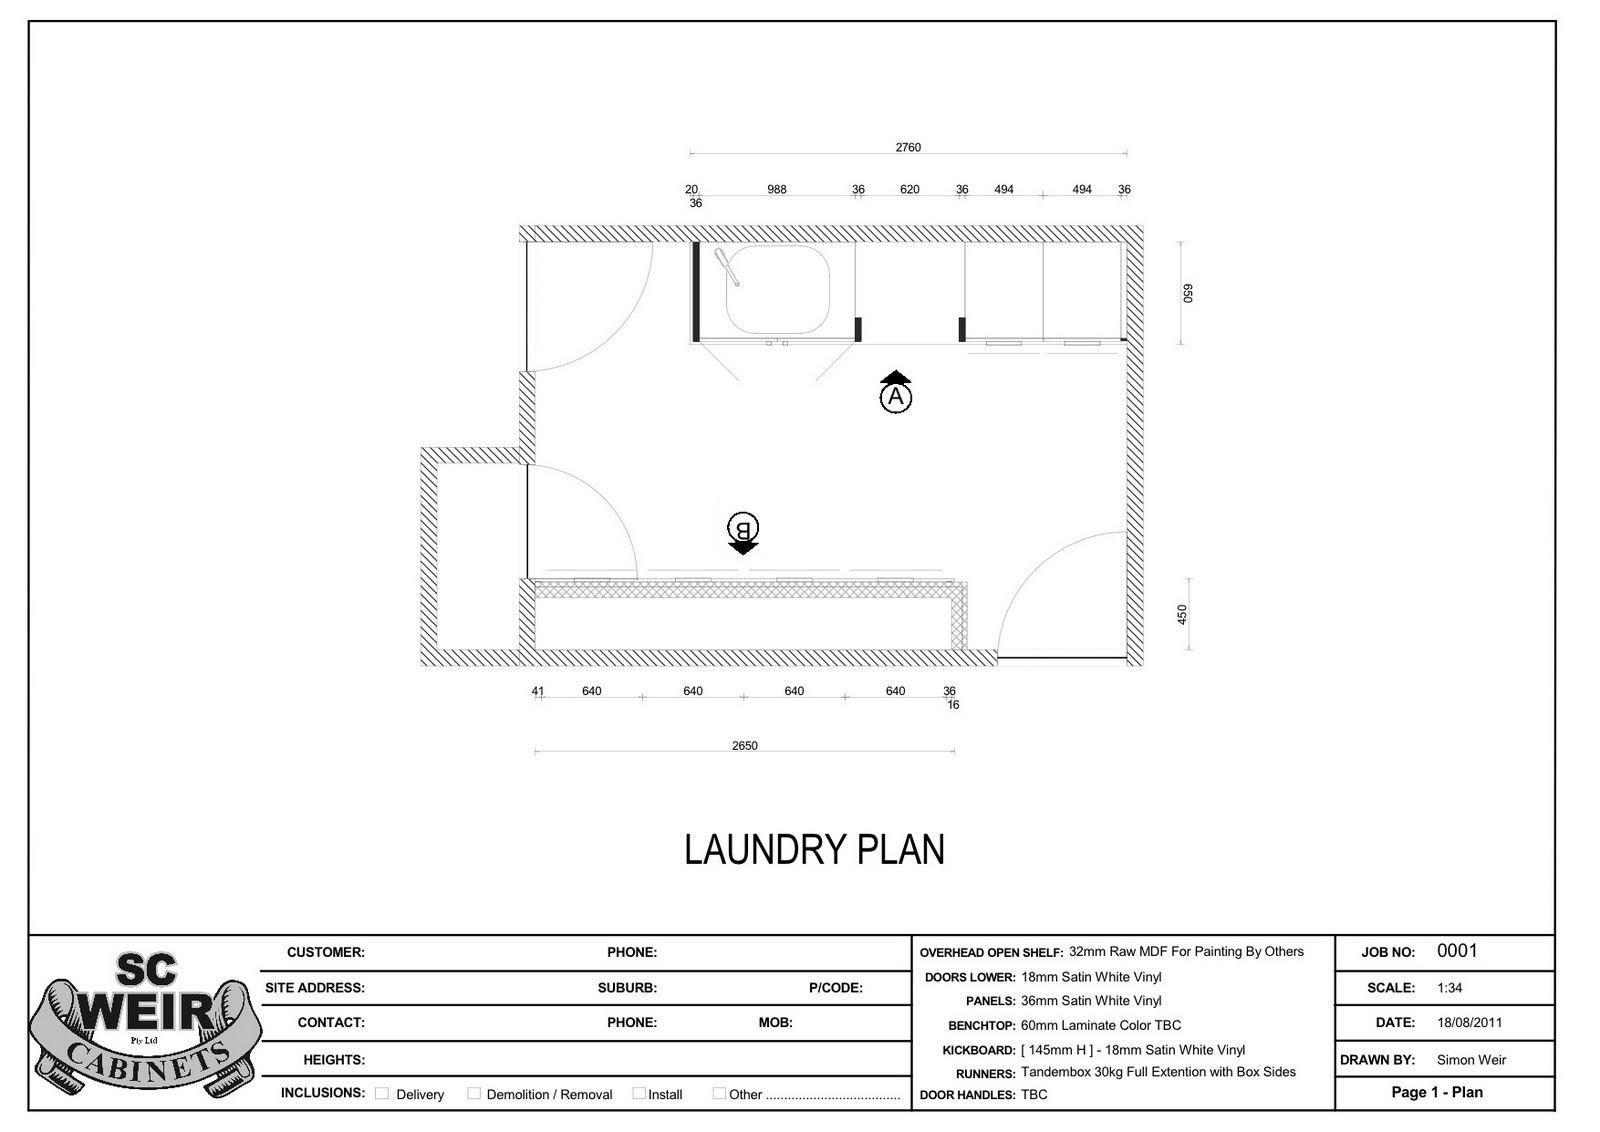 White verandah laundry mudroom drawings for Laundry plan